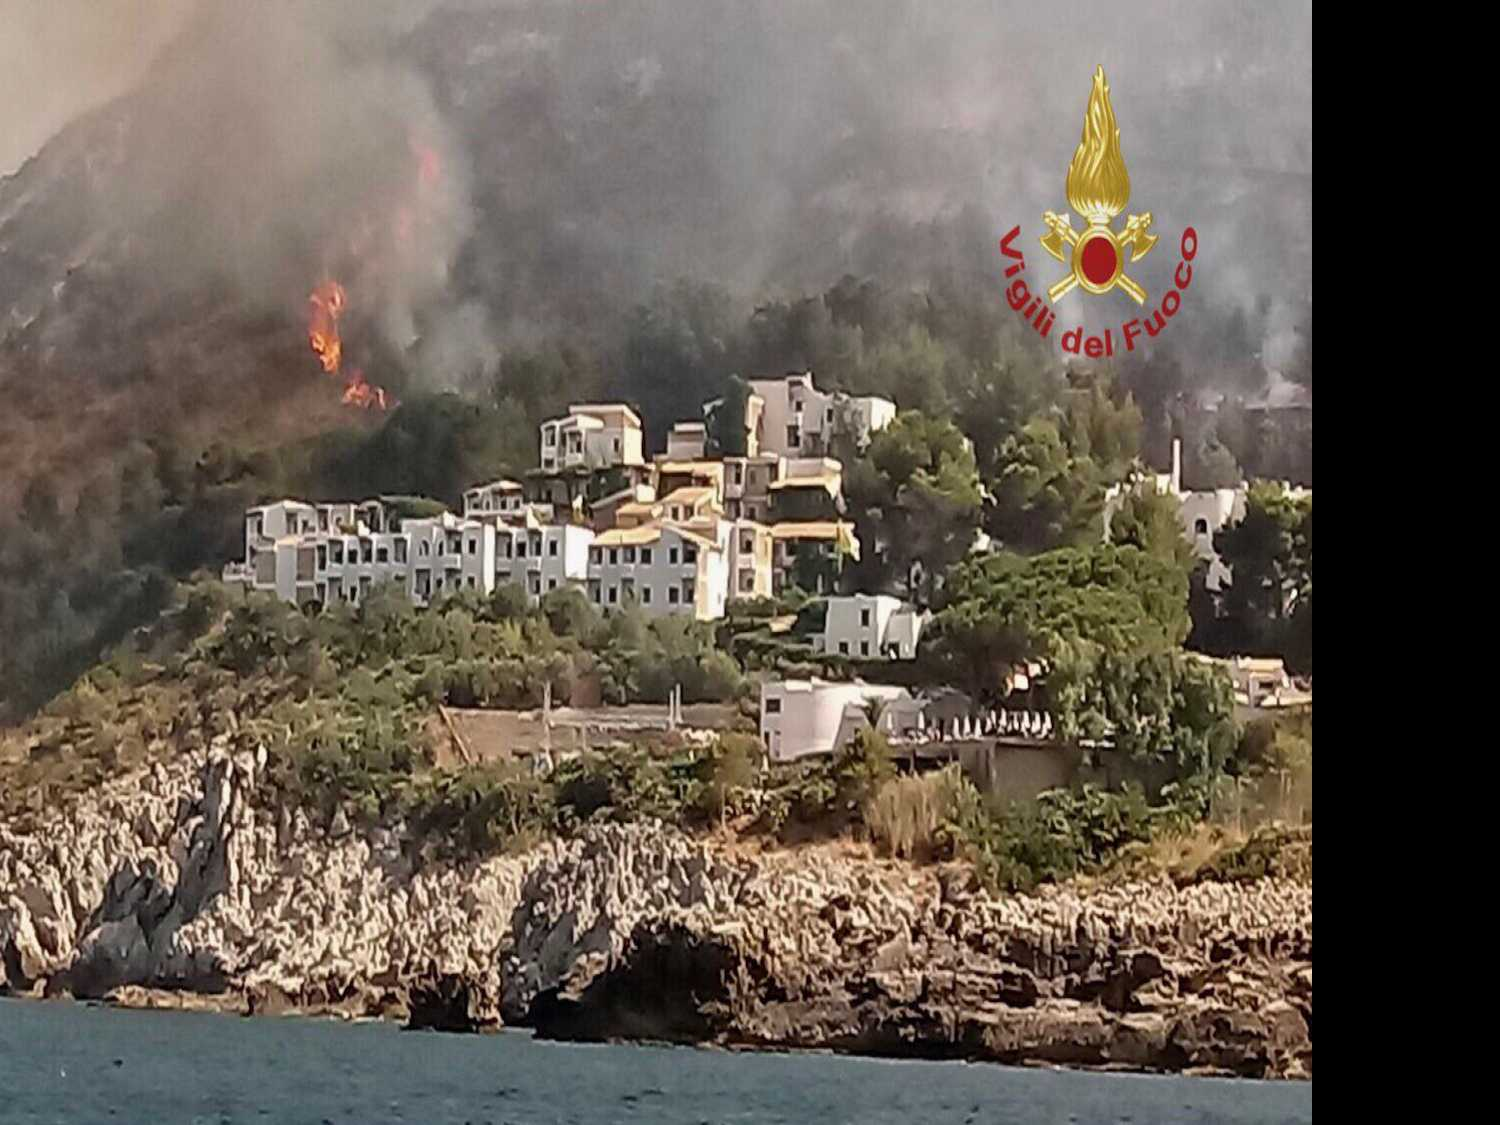 Vacationers in 'Tense' Evacuation from Sicily Wild Fires